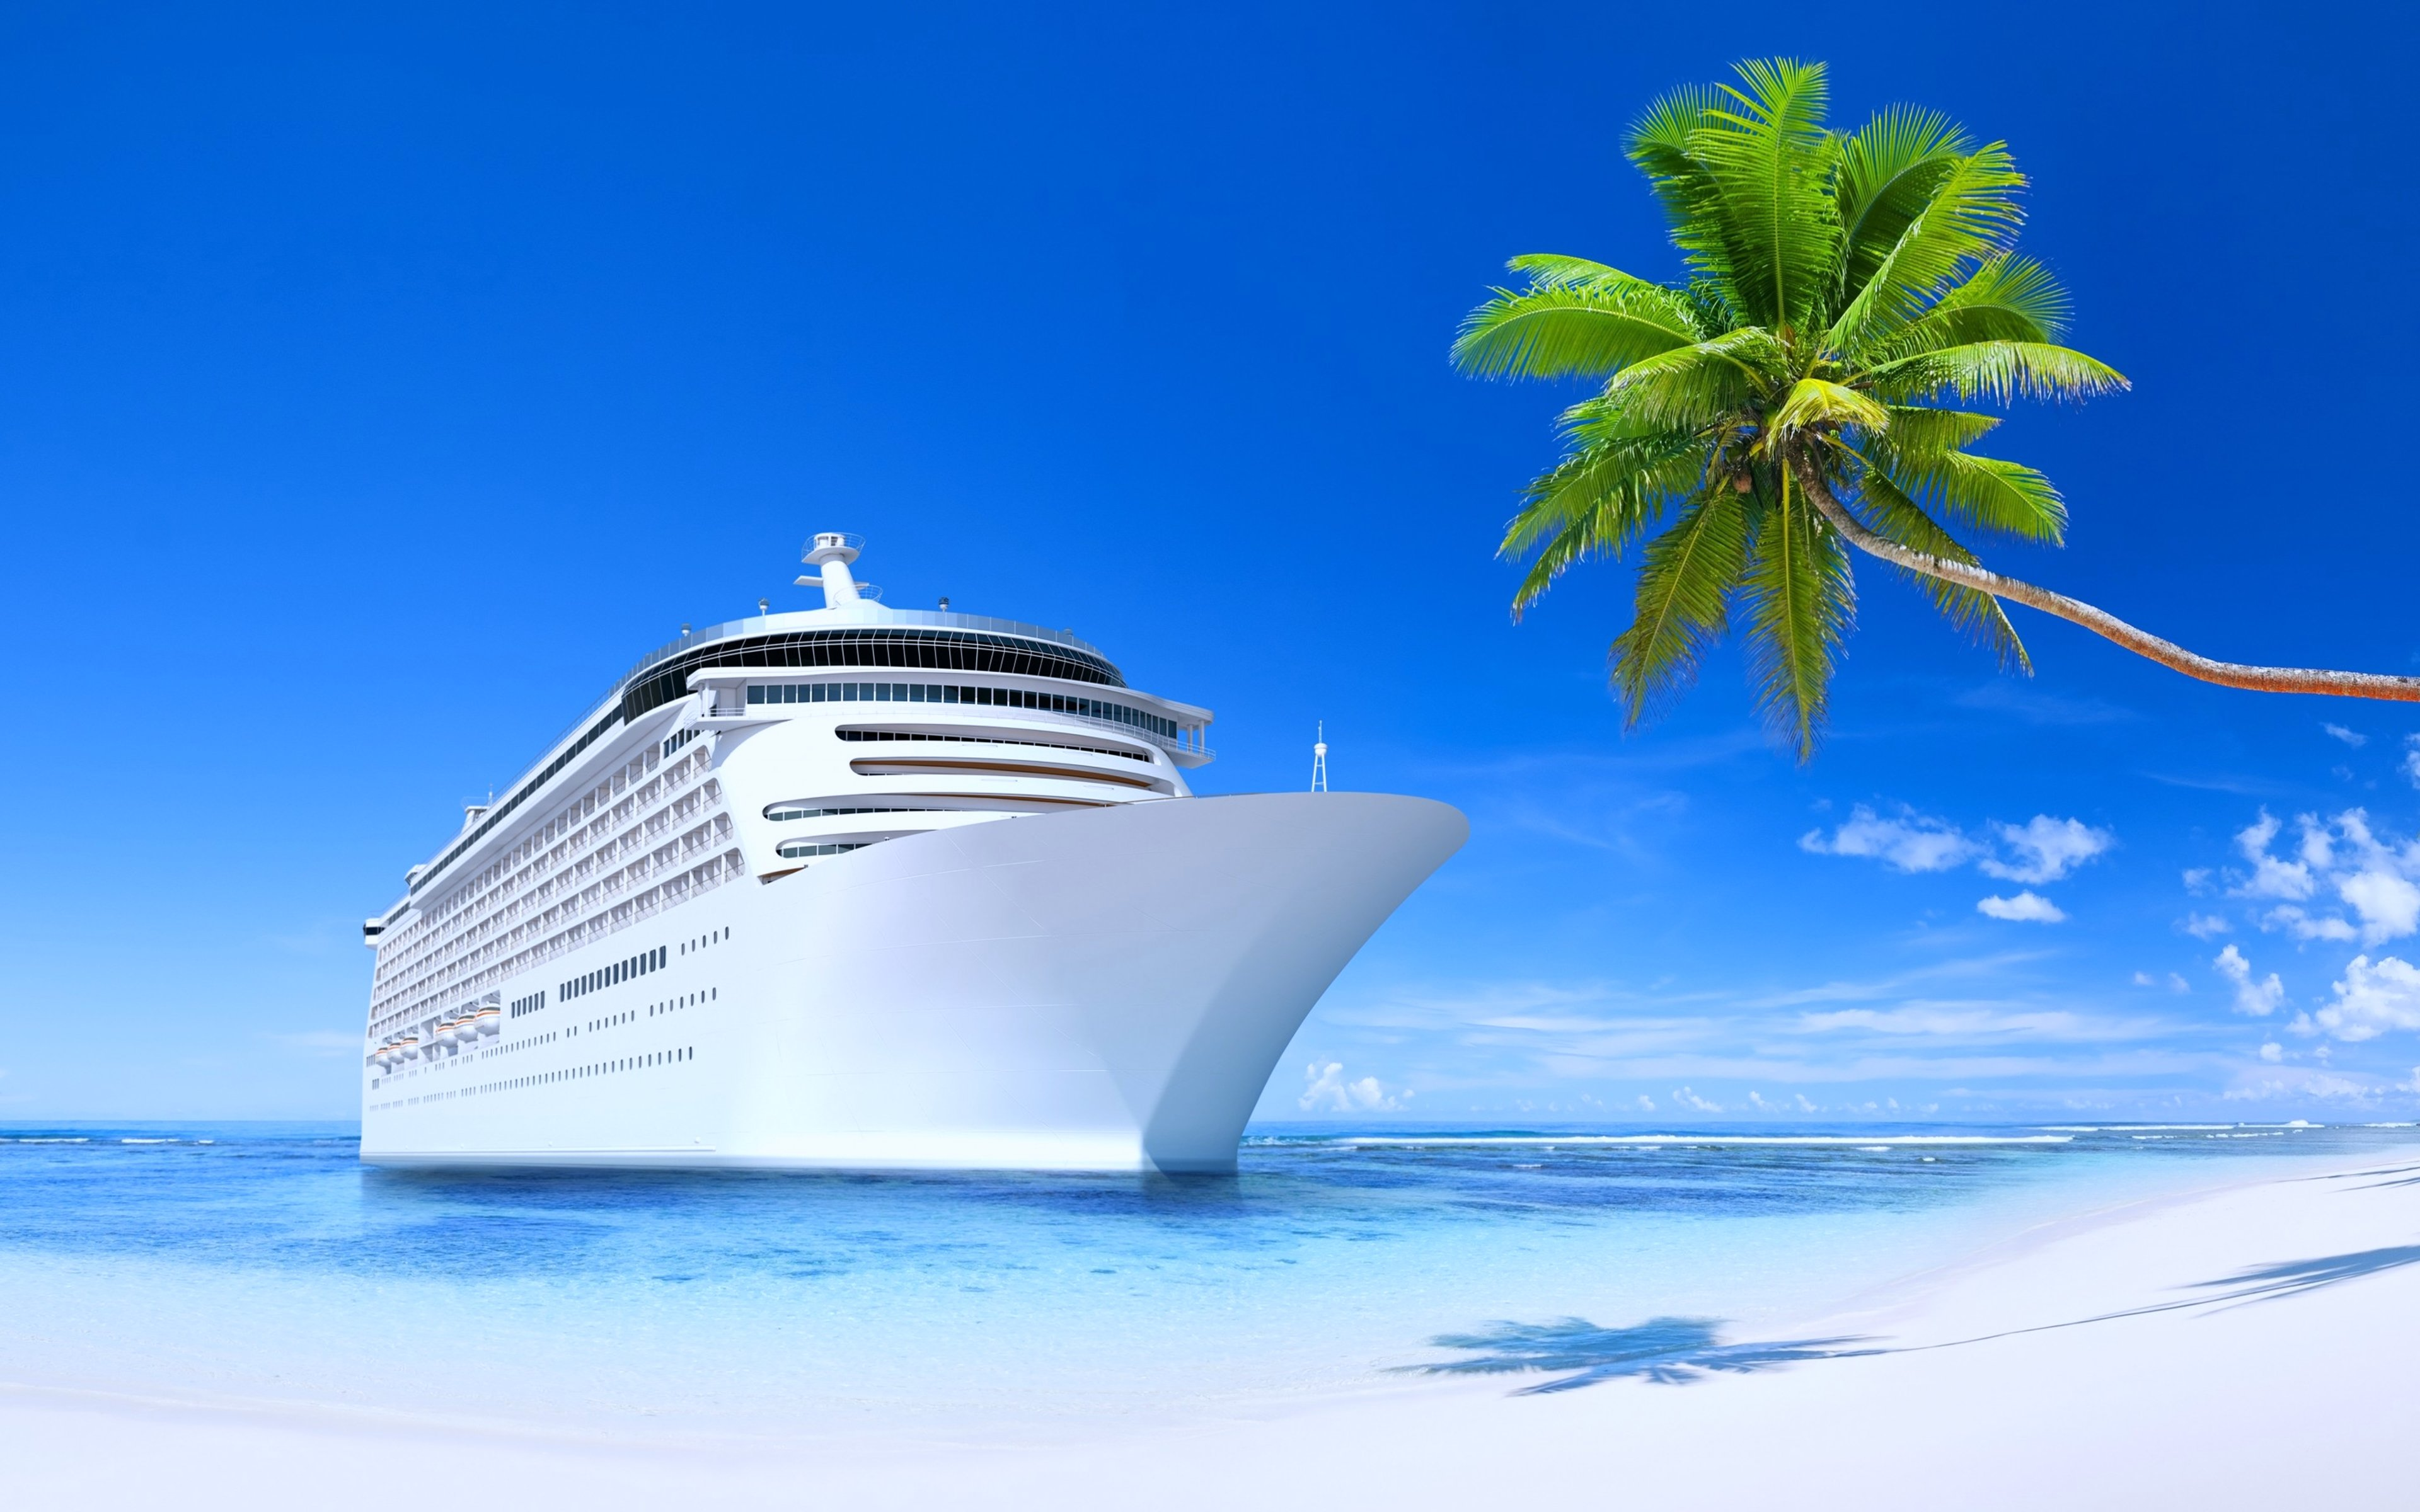 steamship ship tourism travel beach island sunny blue summer palms